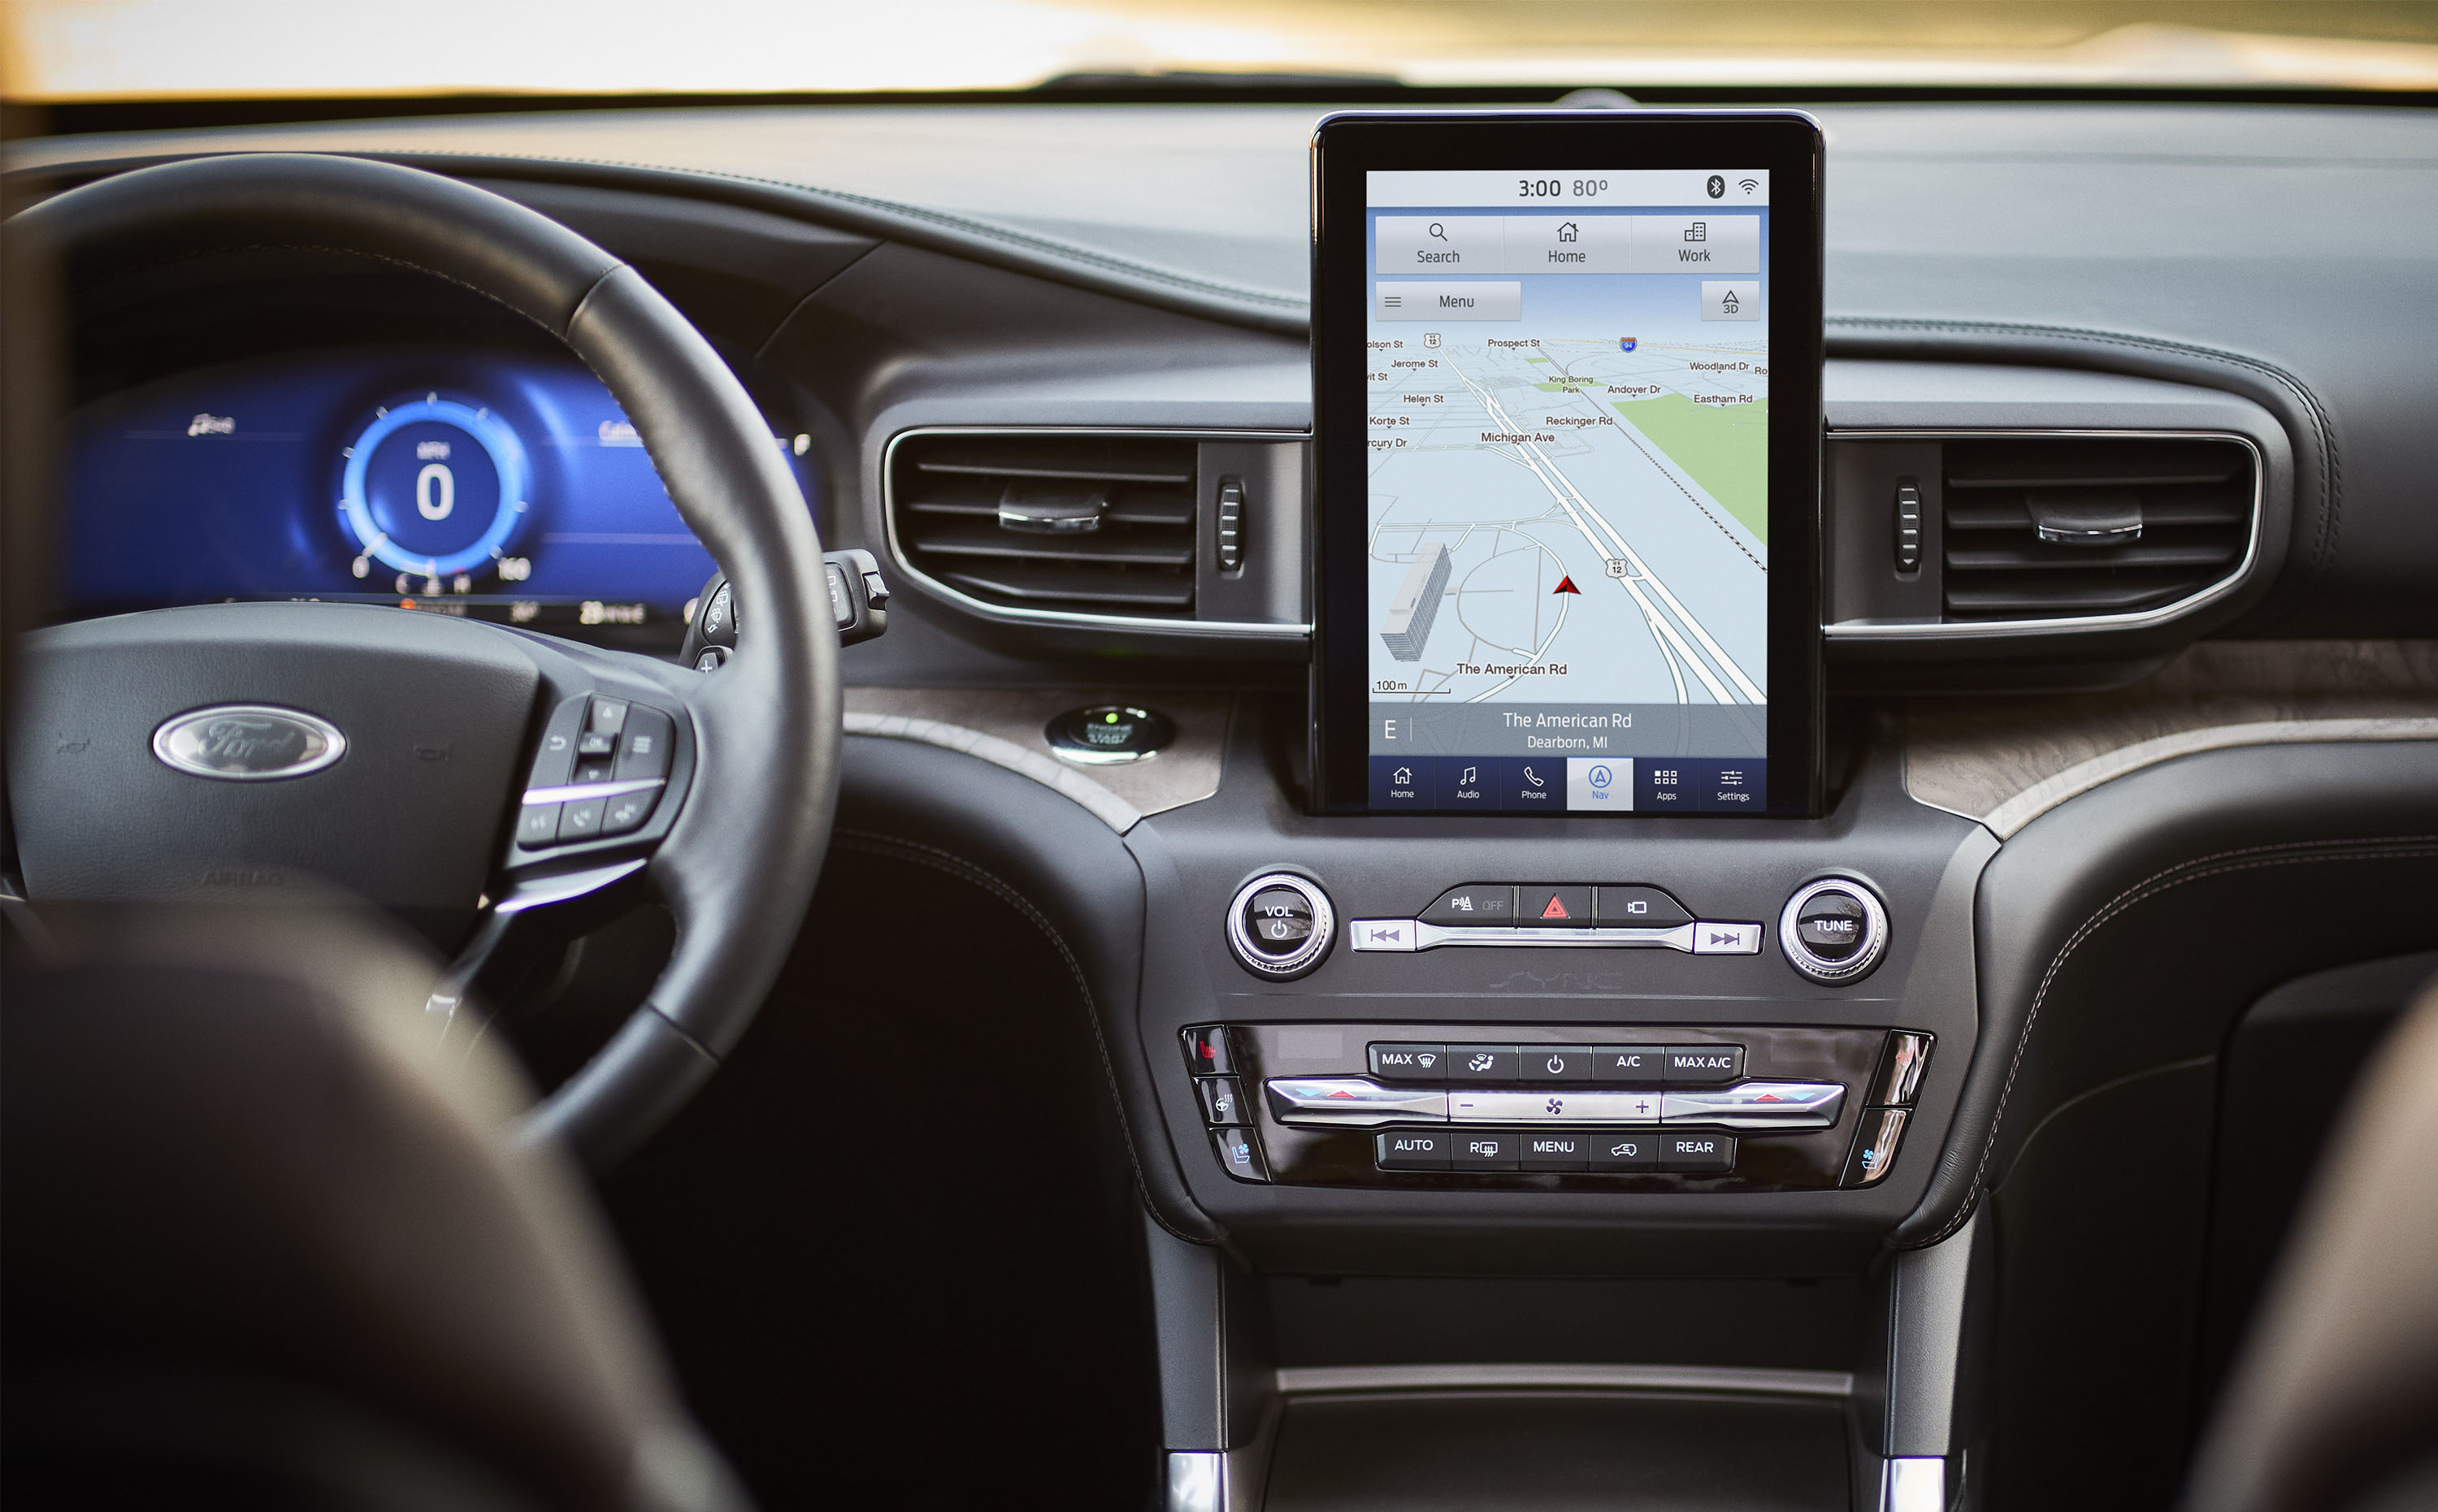 goflatoutph.com - Ford Just Patented In-Car Ads To Be Displayed On Infotainment Screens